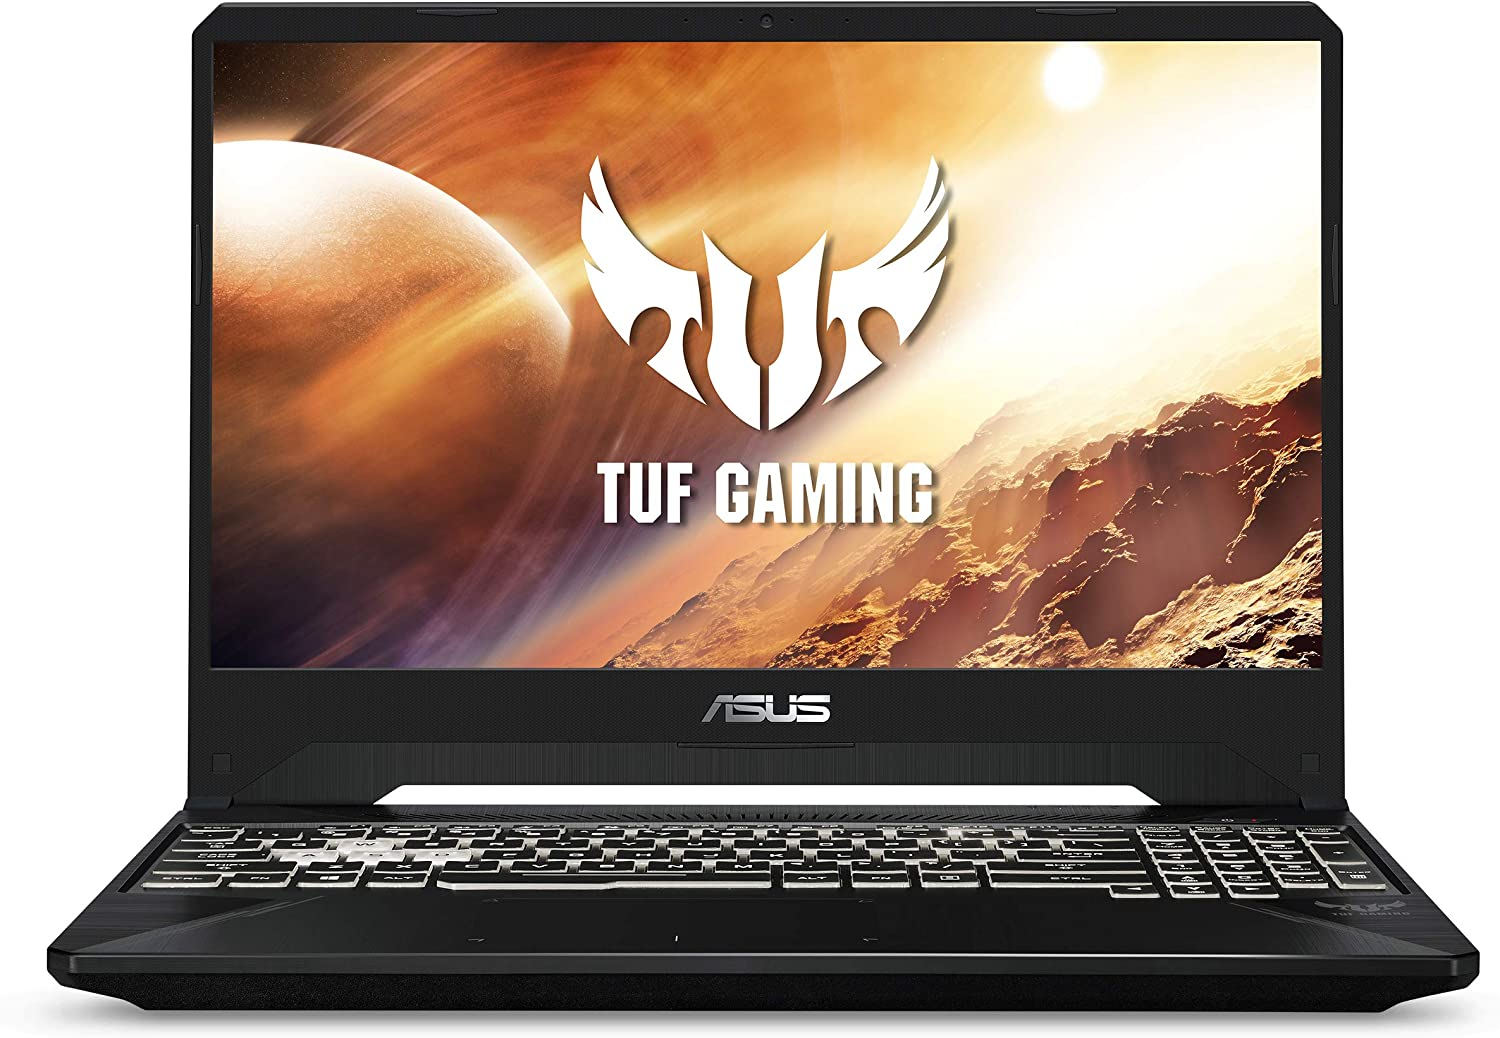 "Asus TUF Gaming Laptop, 15.6"" 120Hz FHD IPS-Type, AMD Ryzen 5-3550H, GeForce RTX 2060, 16GB DDR4, 512GB PCIe SSD, Gigabit Wi-Fi 5, Windows 10 Home, FX505DV-EH54"